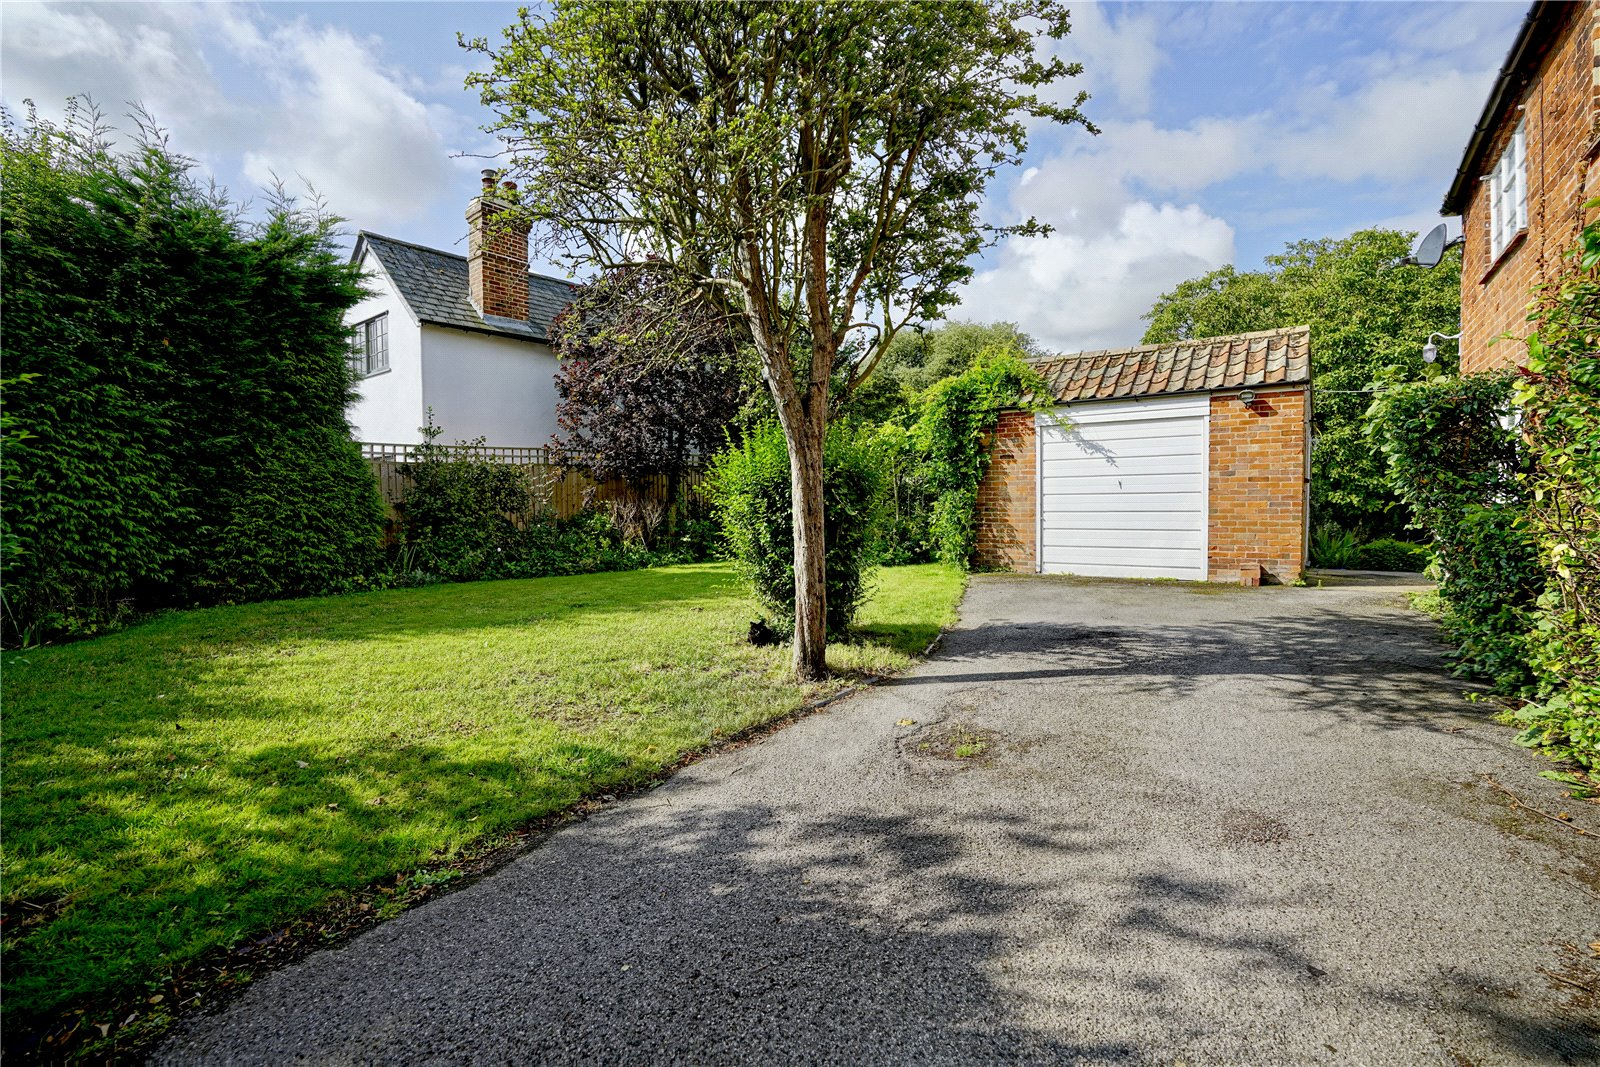 4 bed house for sale in Buckden  - Property Image 5